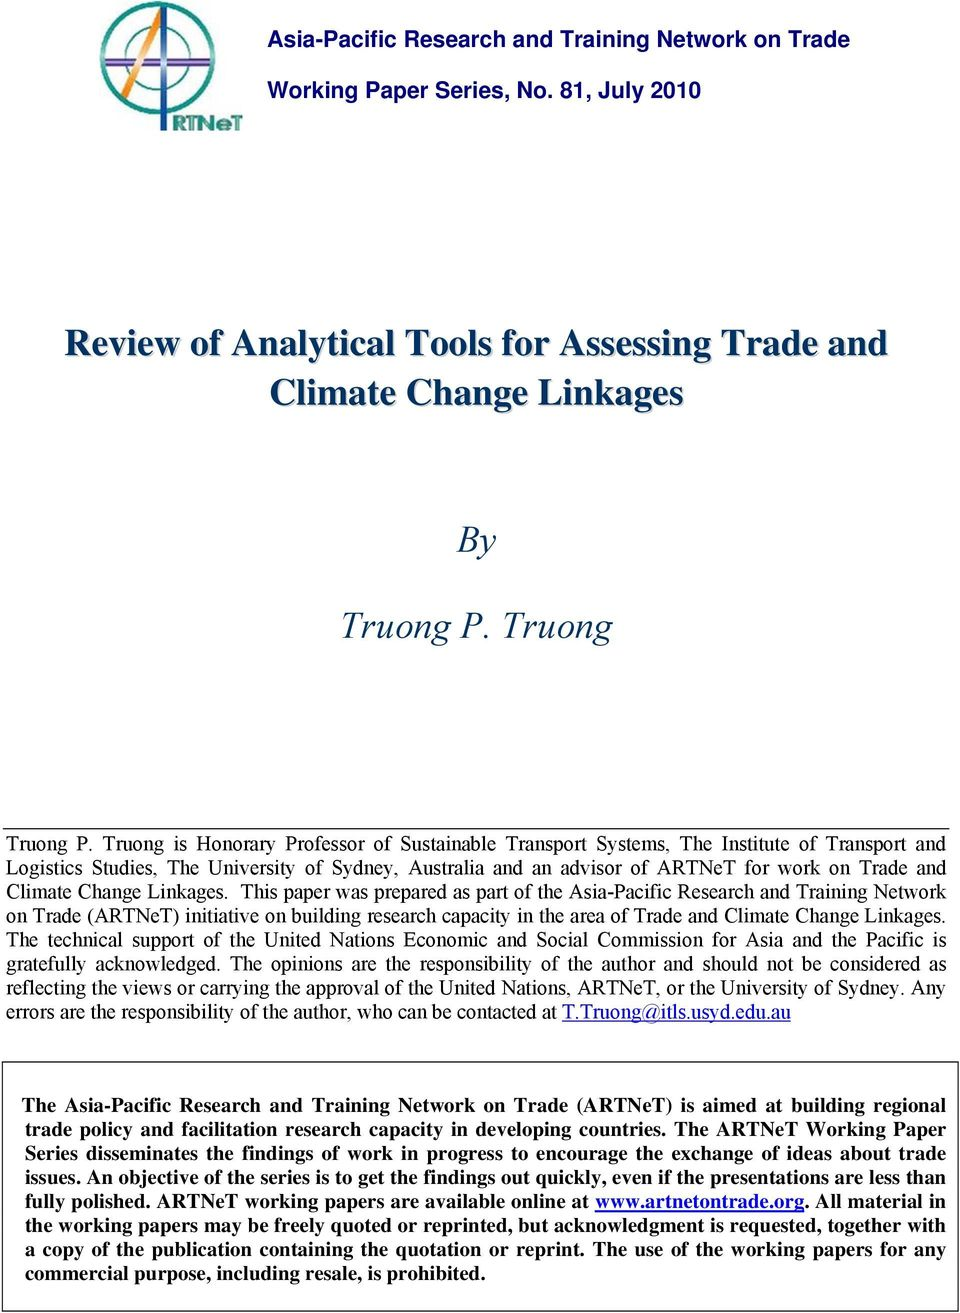 Lnkages. Ths paper was prepared as part of the Asa-Pacfc Research and Tranng Network on Trade (ARTNeT) ntatve on buldng research capacty n the area of Trade and Clmate Change Lnkages.